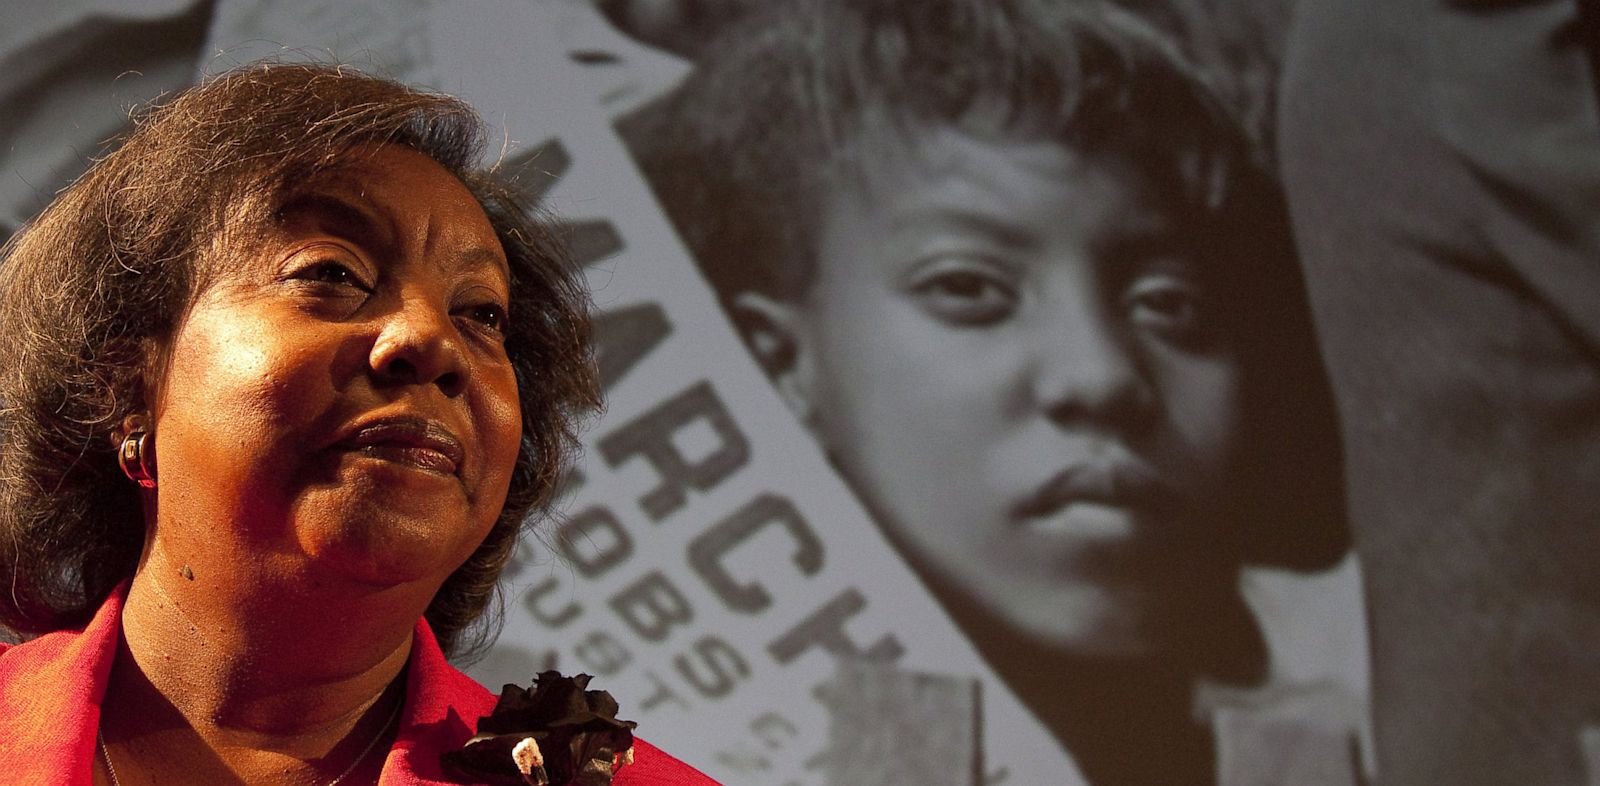 PHOTO: Edith Lee Payne stands in front of an image of herself at the age of 12, taken at the March on Washington after participating in a Black History Month program at the Detroit School of the Arts, Feb. 15, 2012.